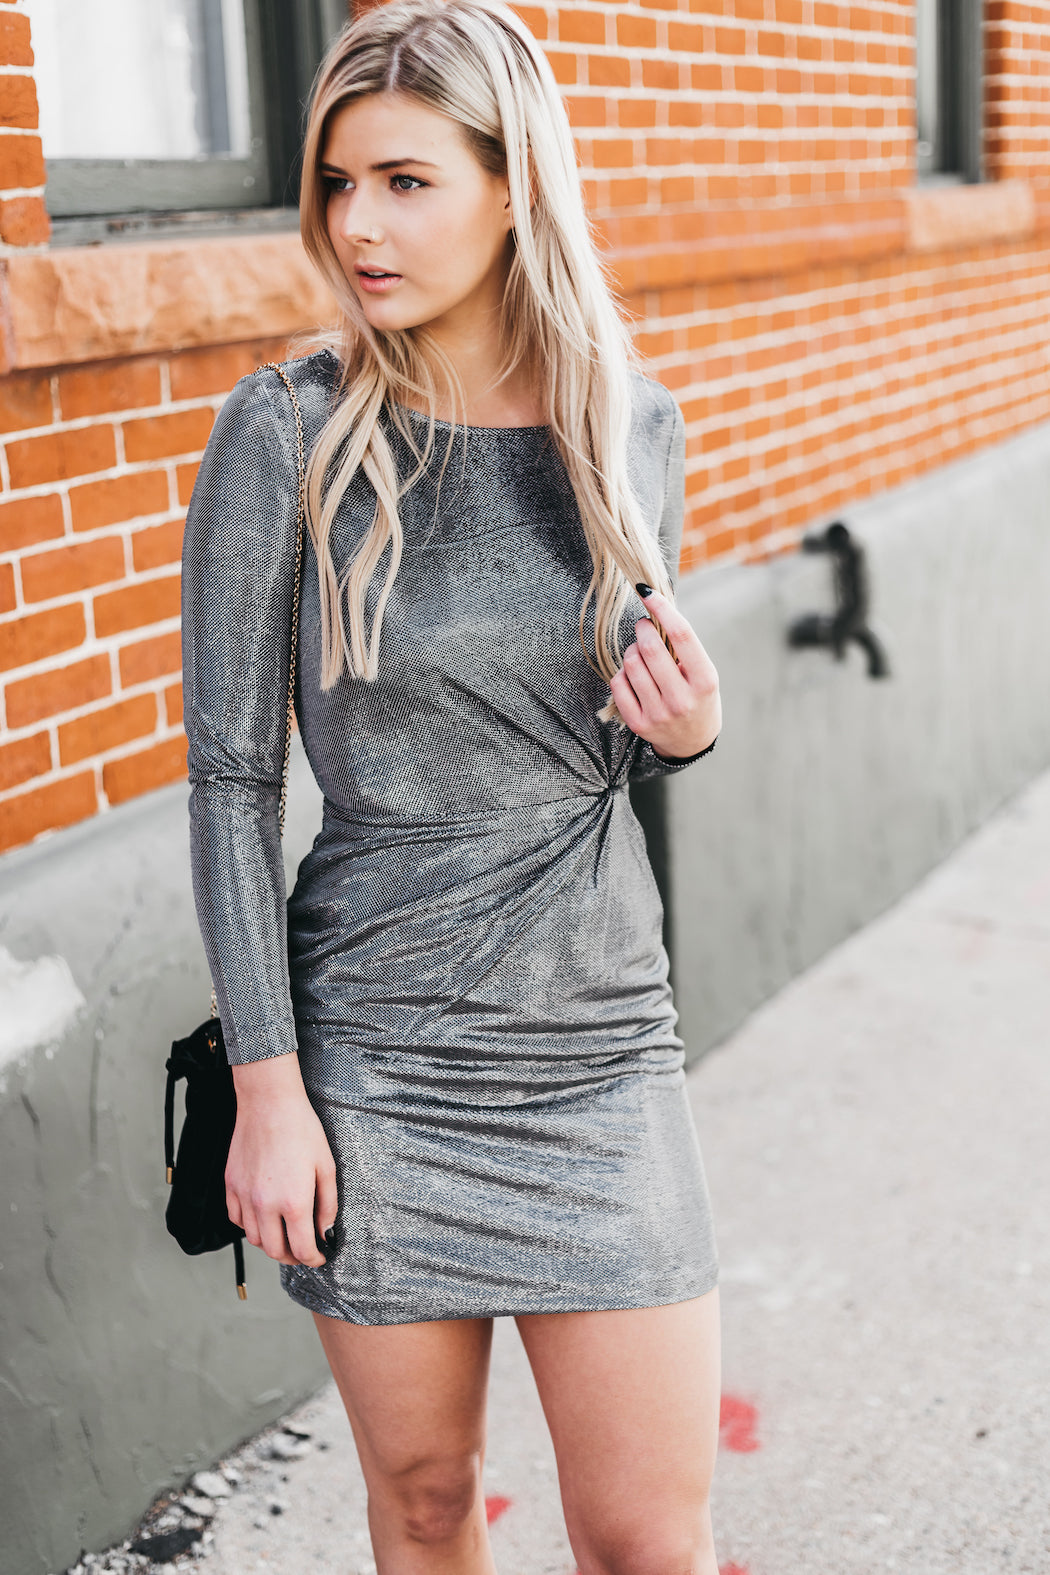 BB DAKOTA - Whats Your Shine Dress